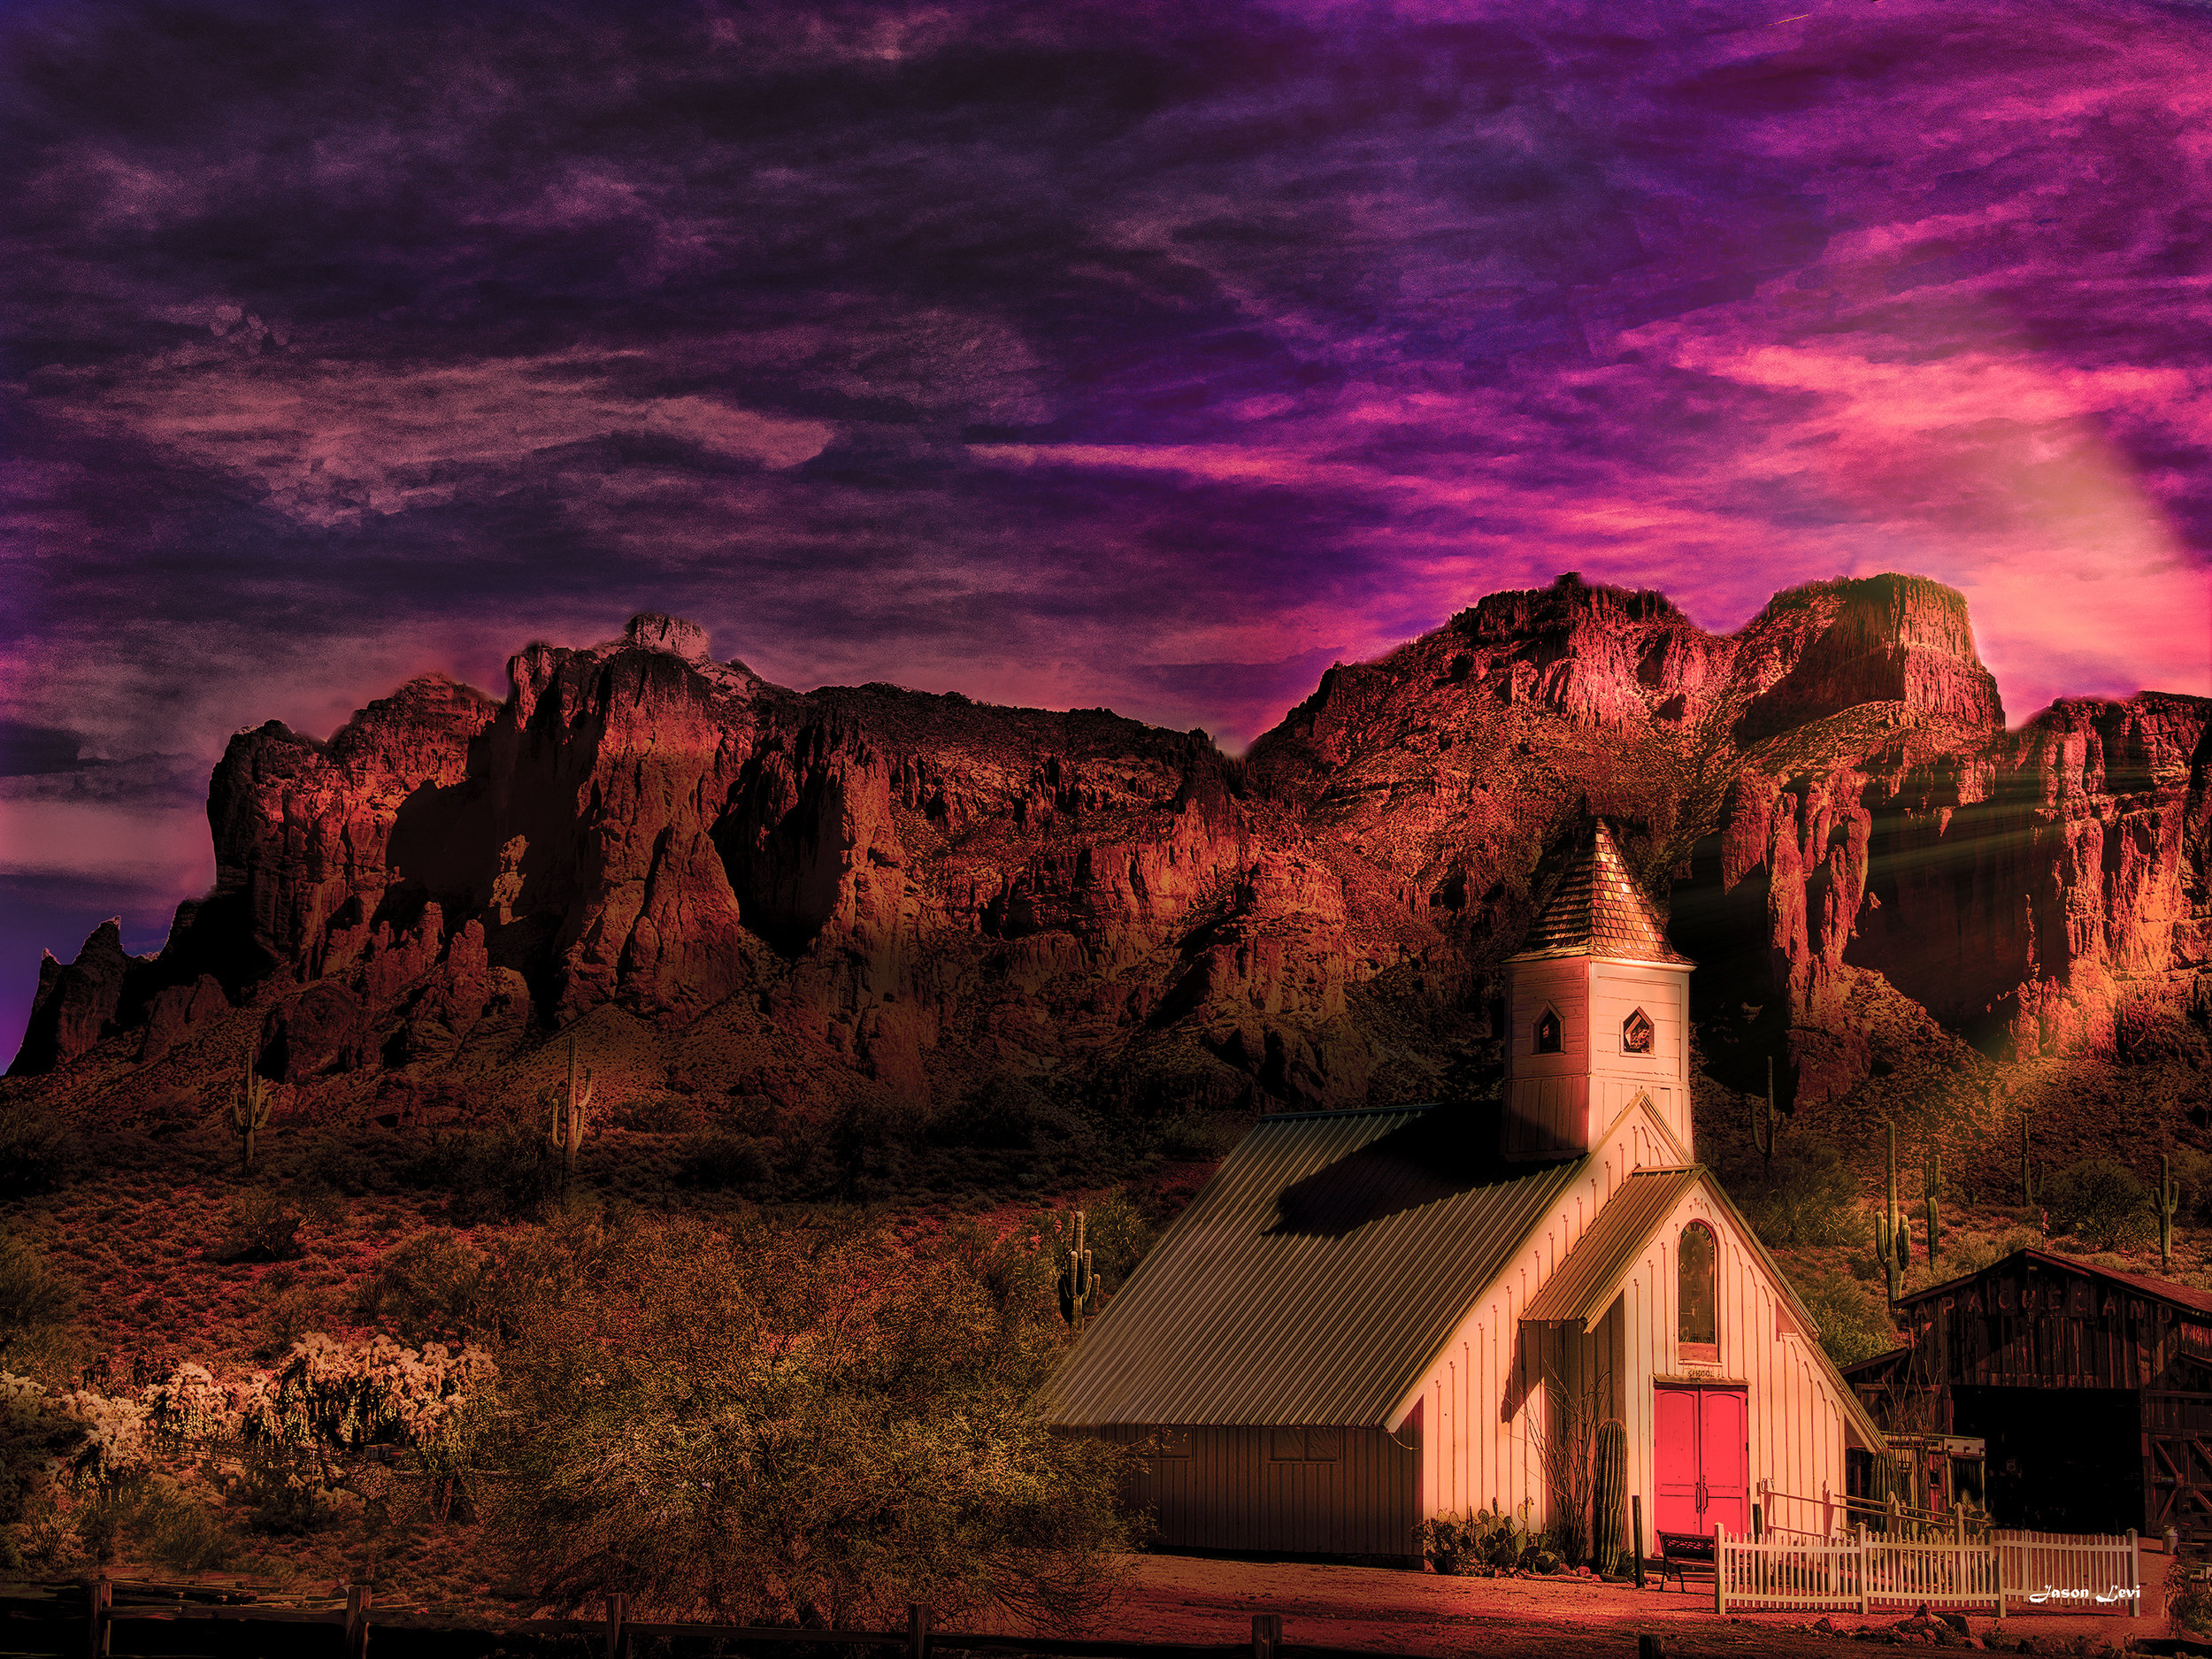 Dawn at the Superstition Mountains